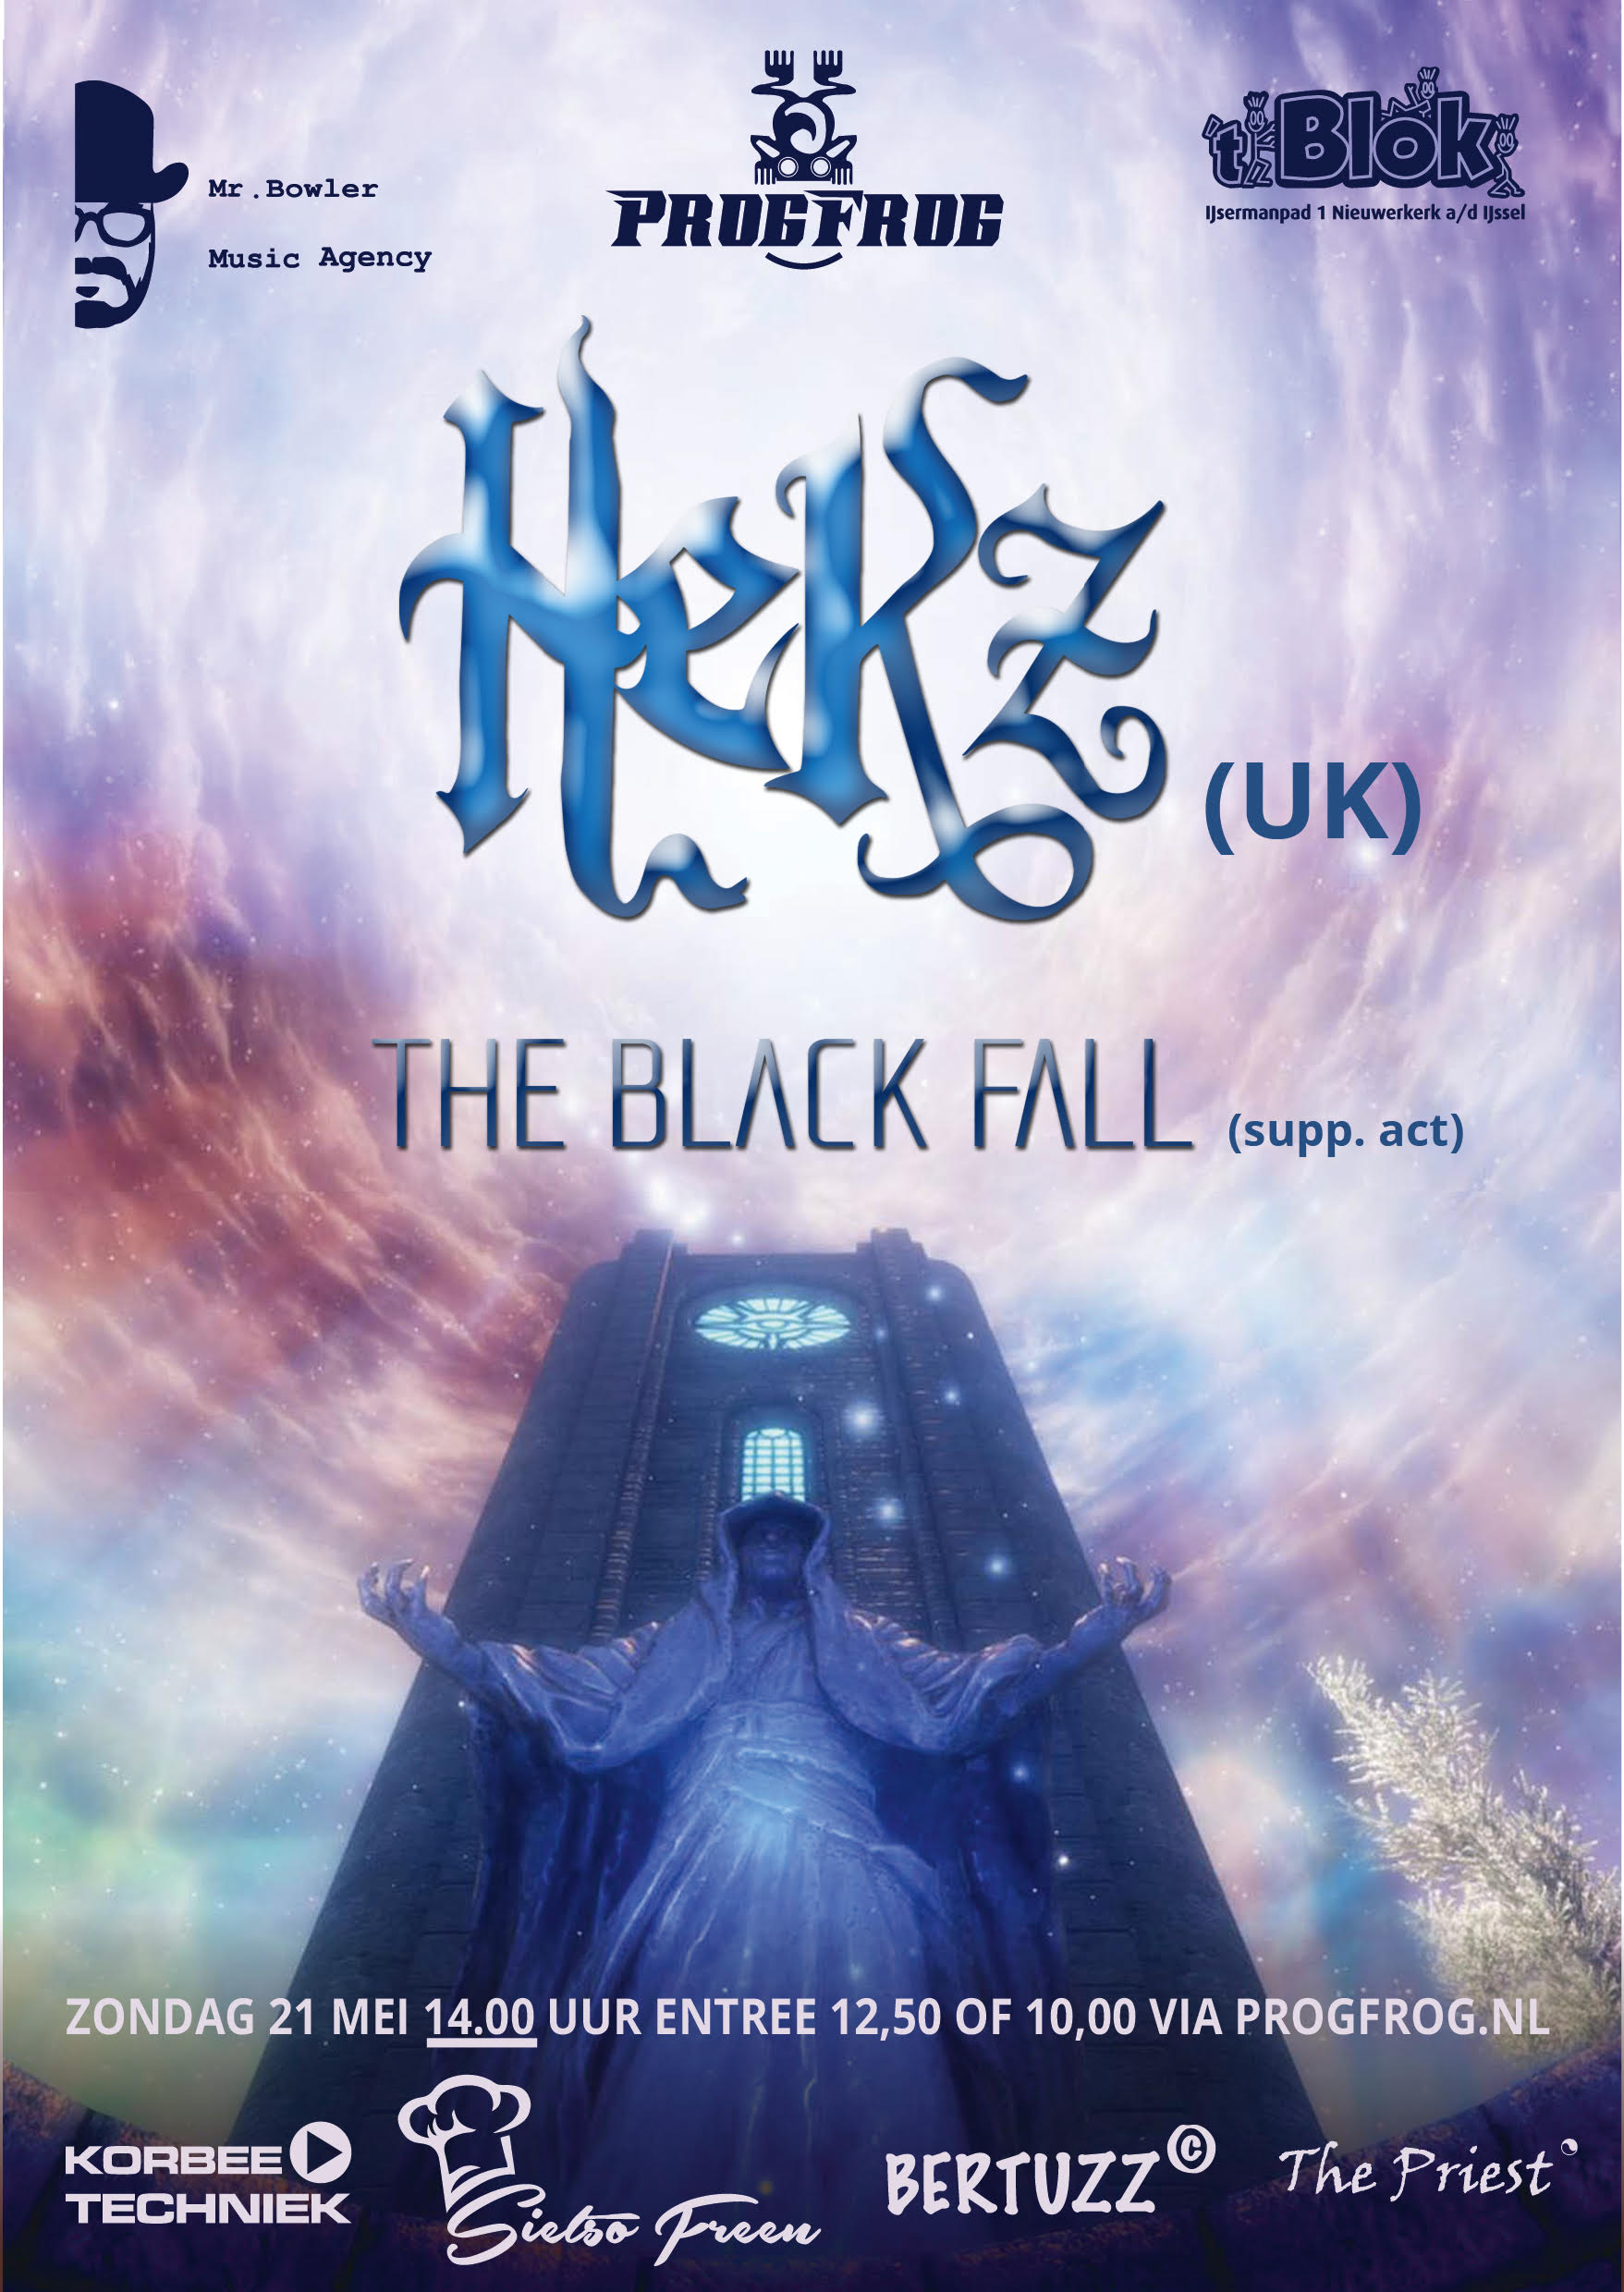 HEKZ (UK) + support act THE BLACK FALL